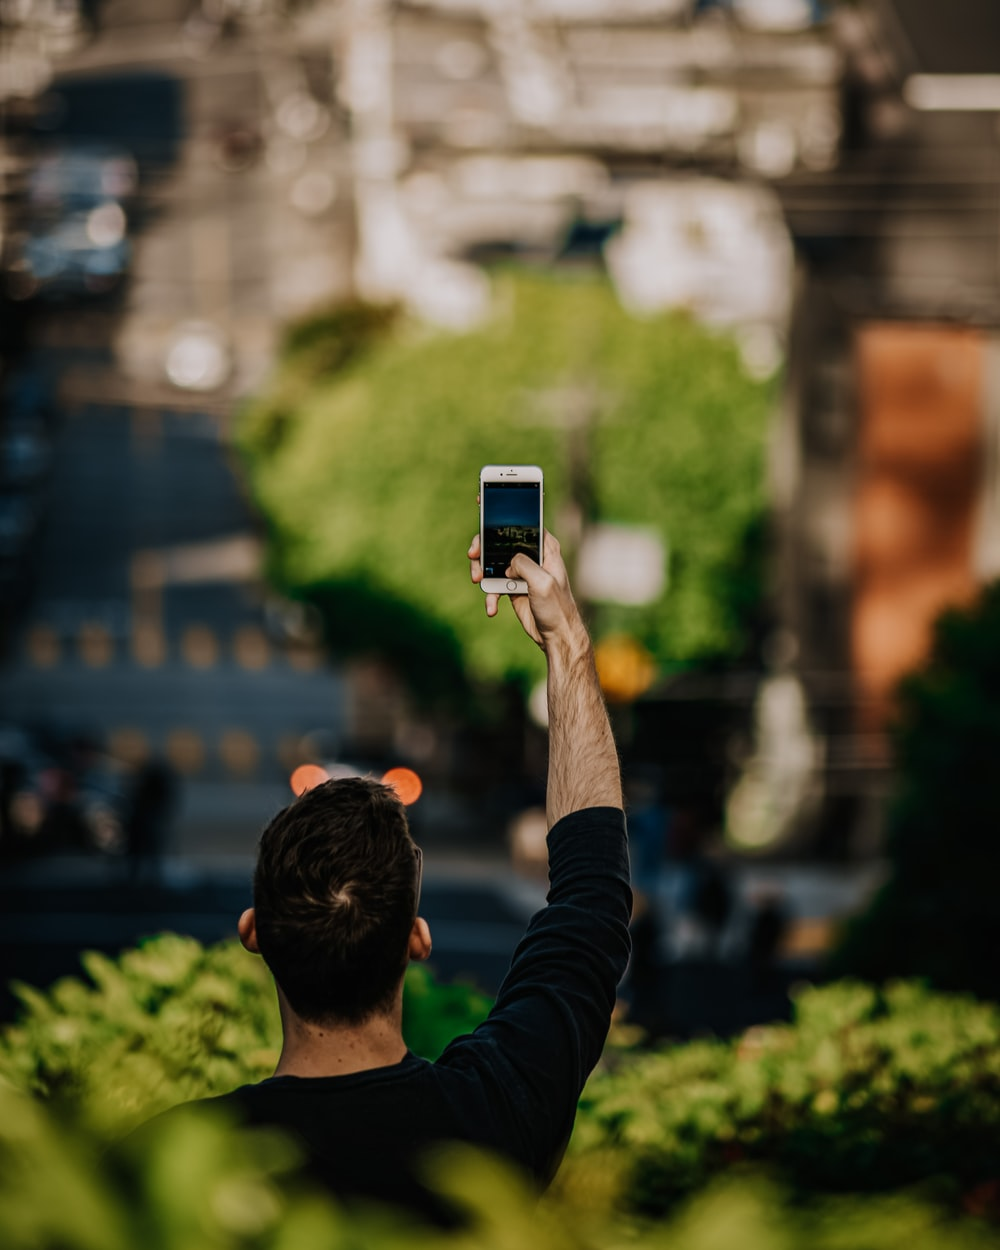 man in black long sleeve shirt holding black smartphone taking photo of city buildings during daytime